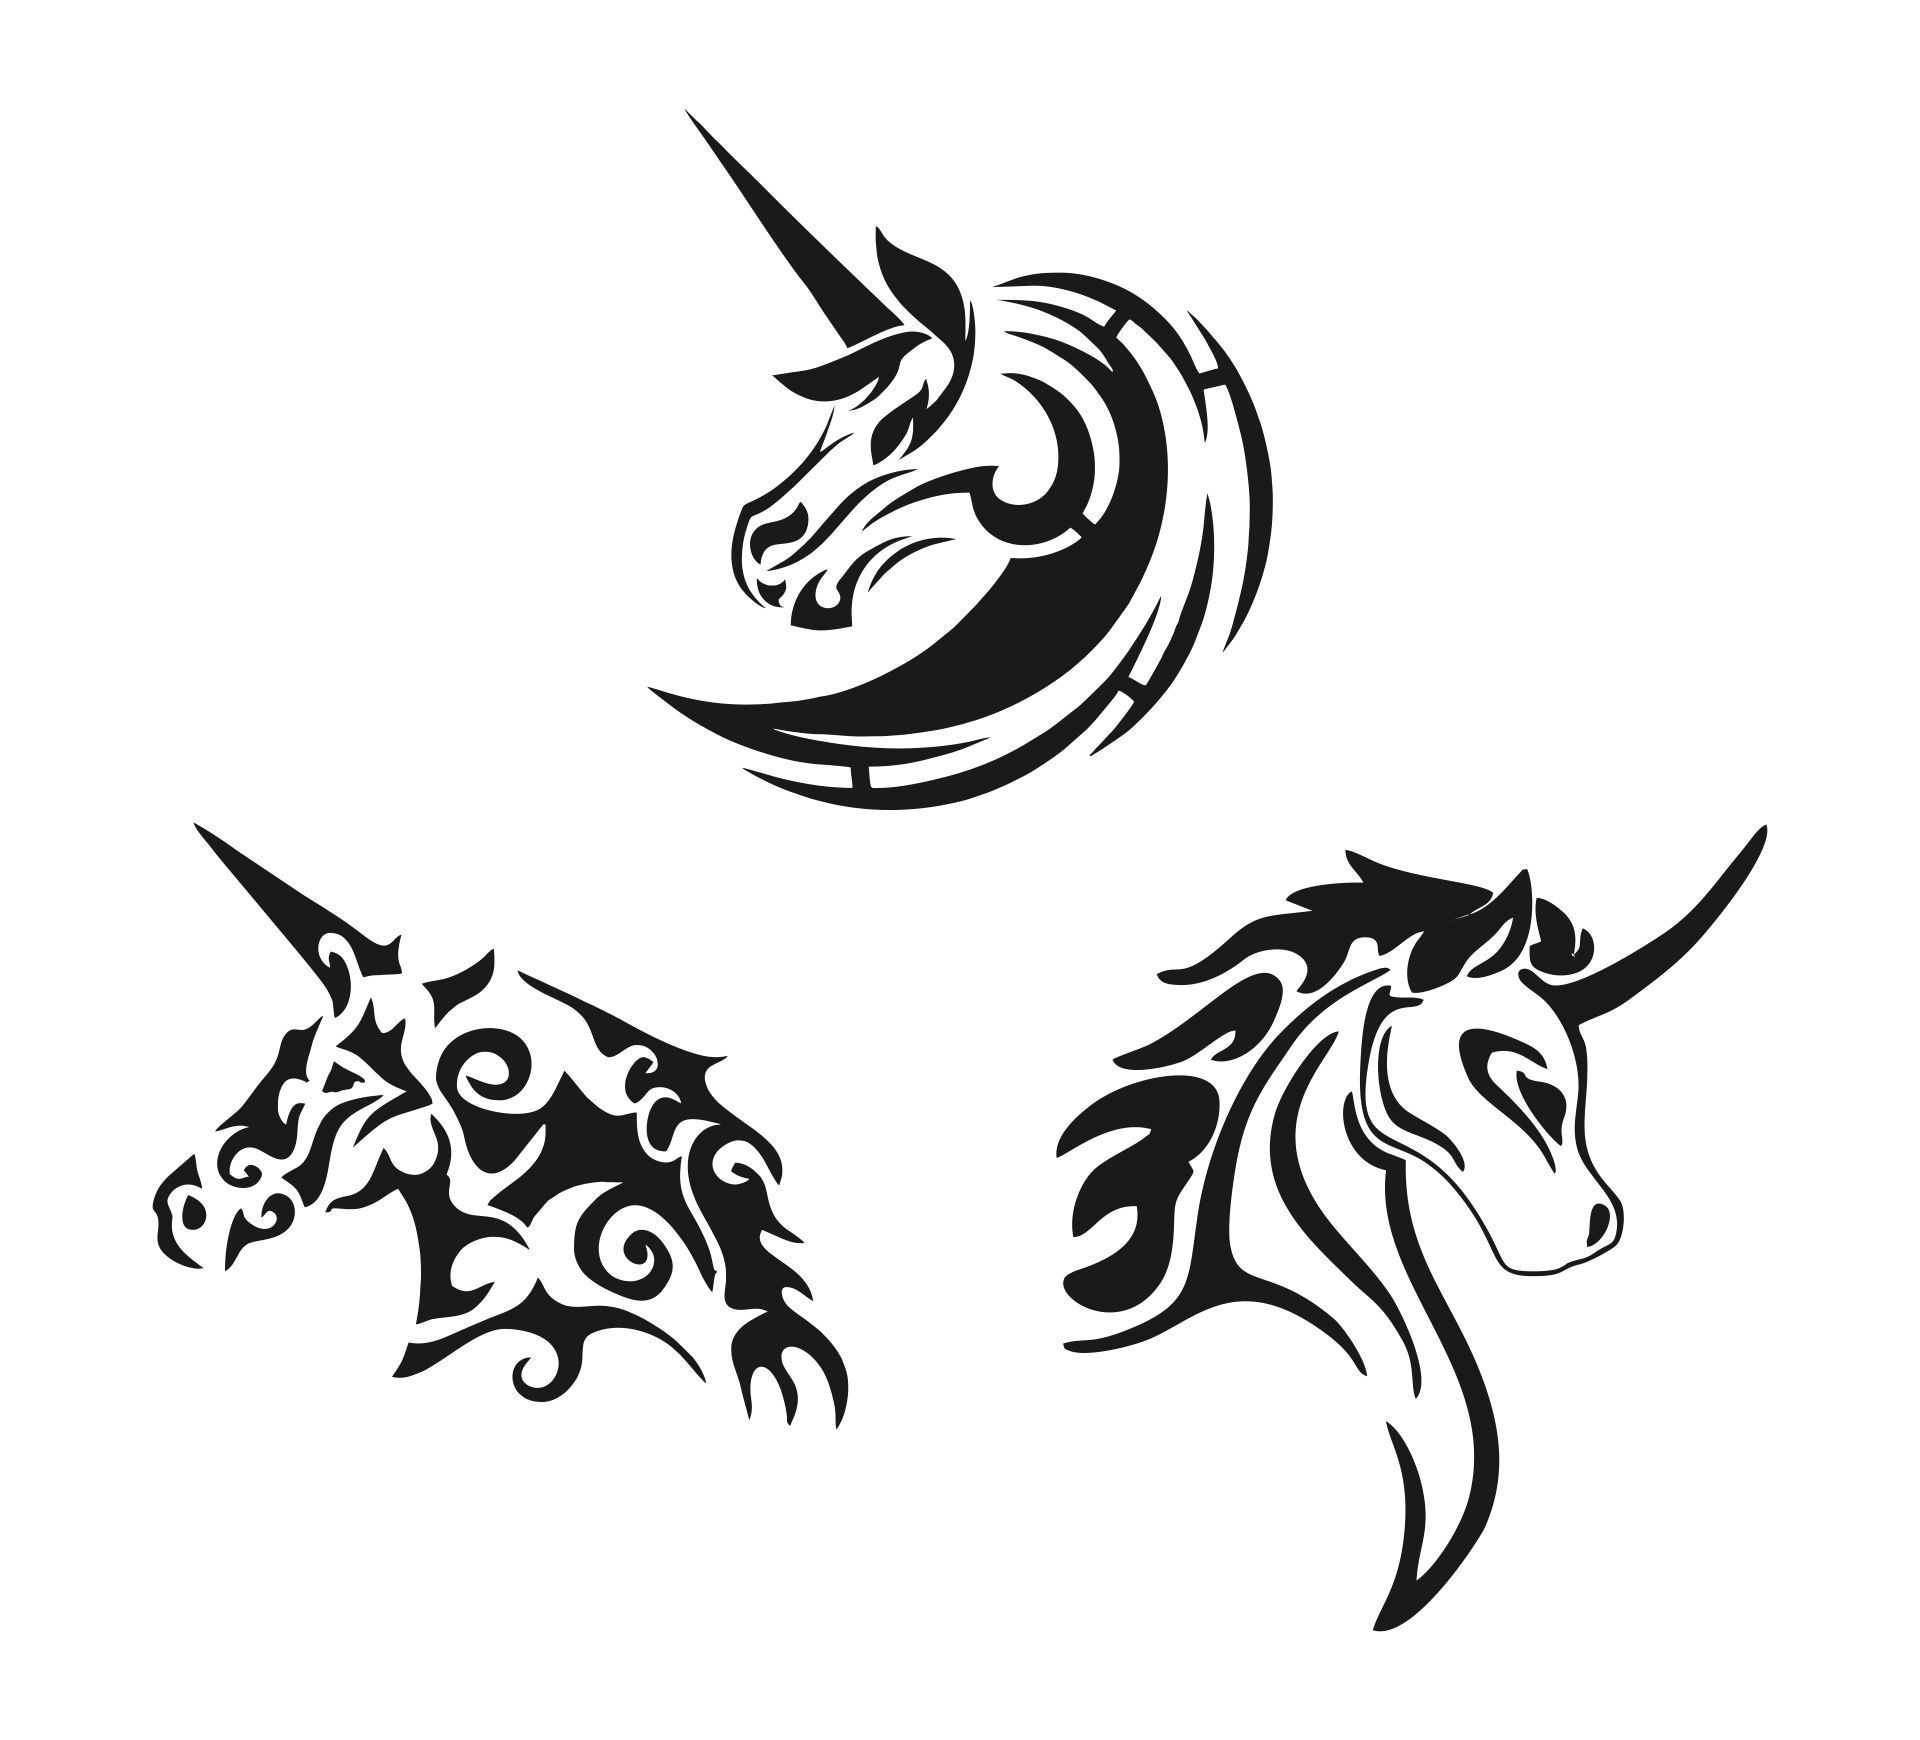 Best images of unicorn stencils free printable